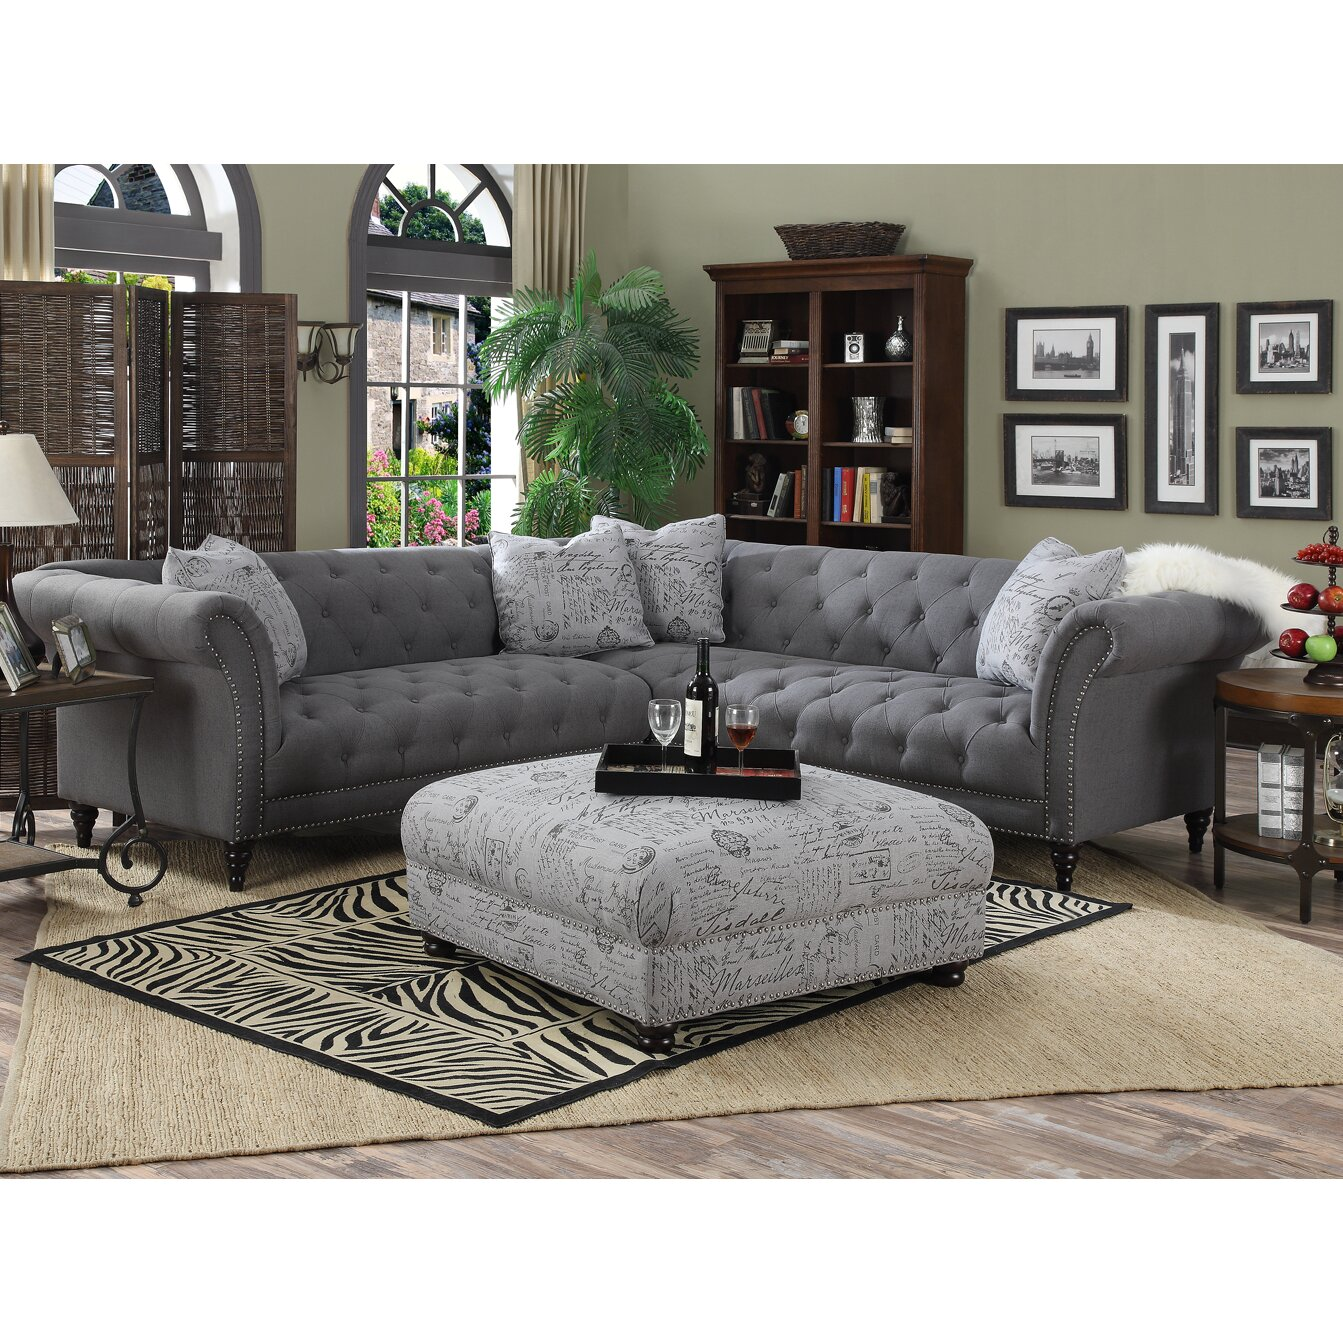 Lark Manor Awa Turenne Sectional Reviews Wayfair